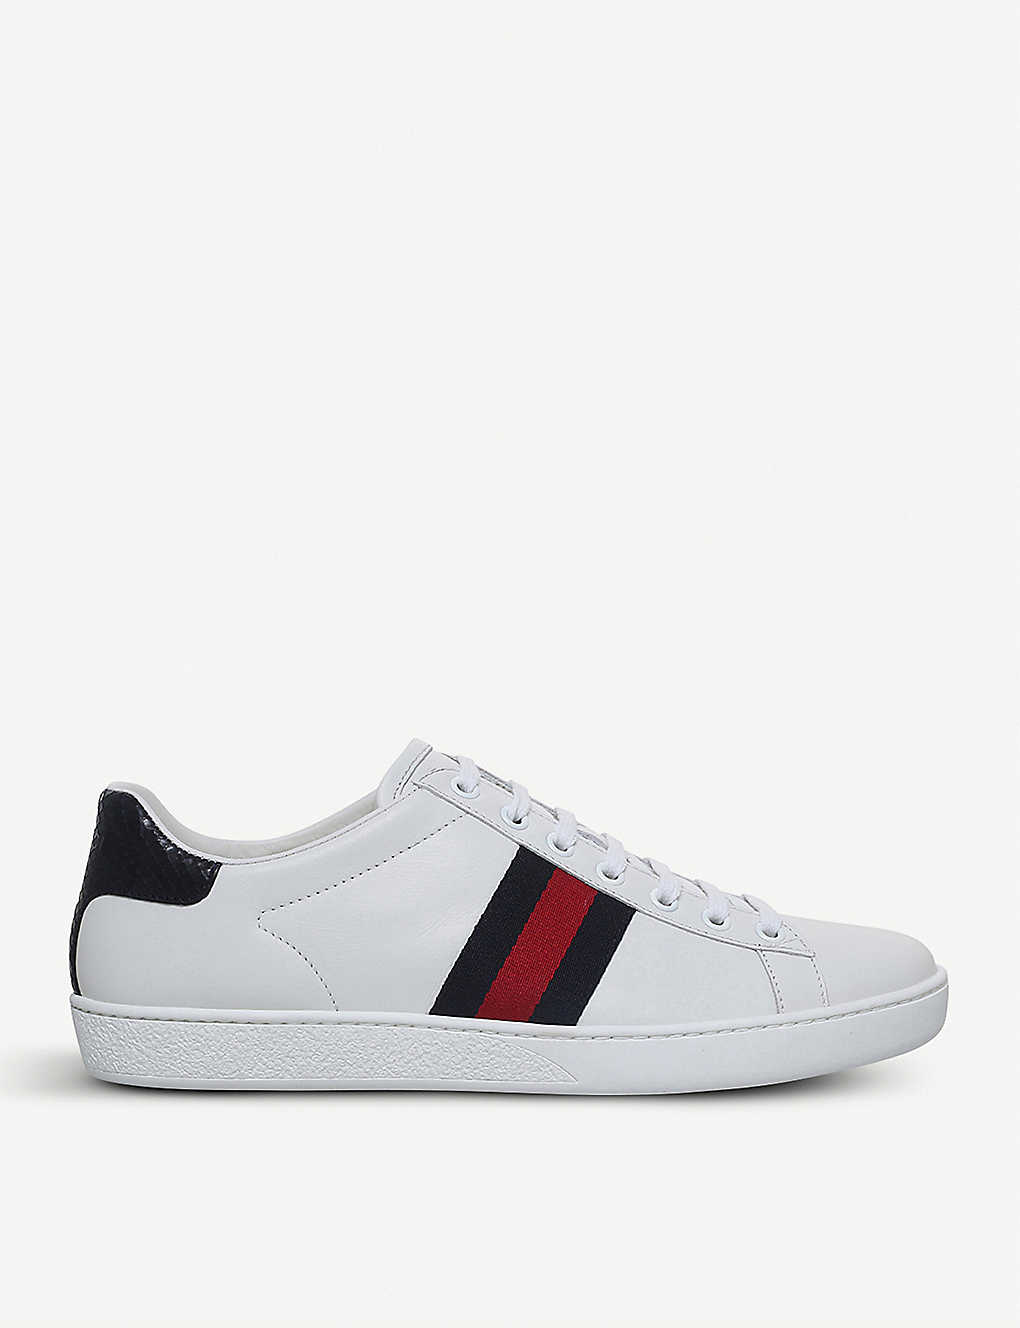 Gucci Shoes New Ace leather trainers